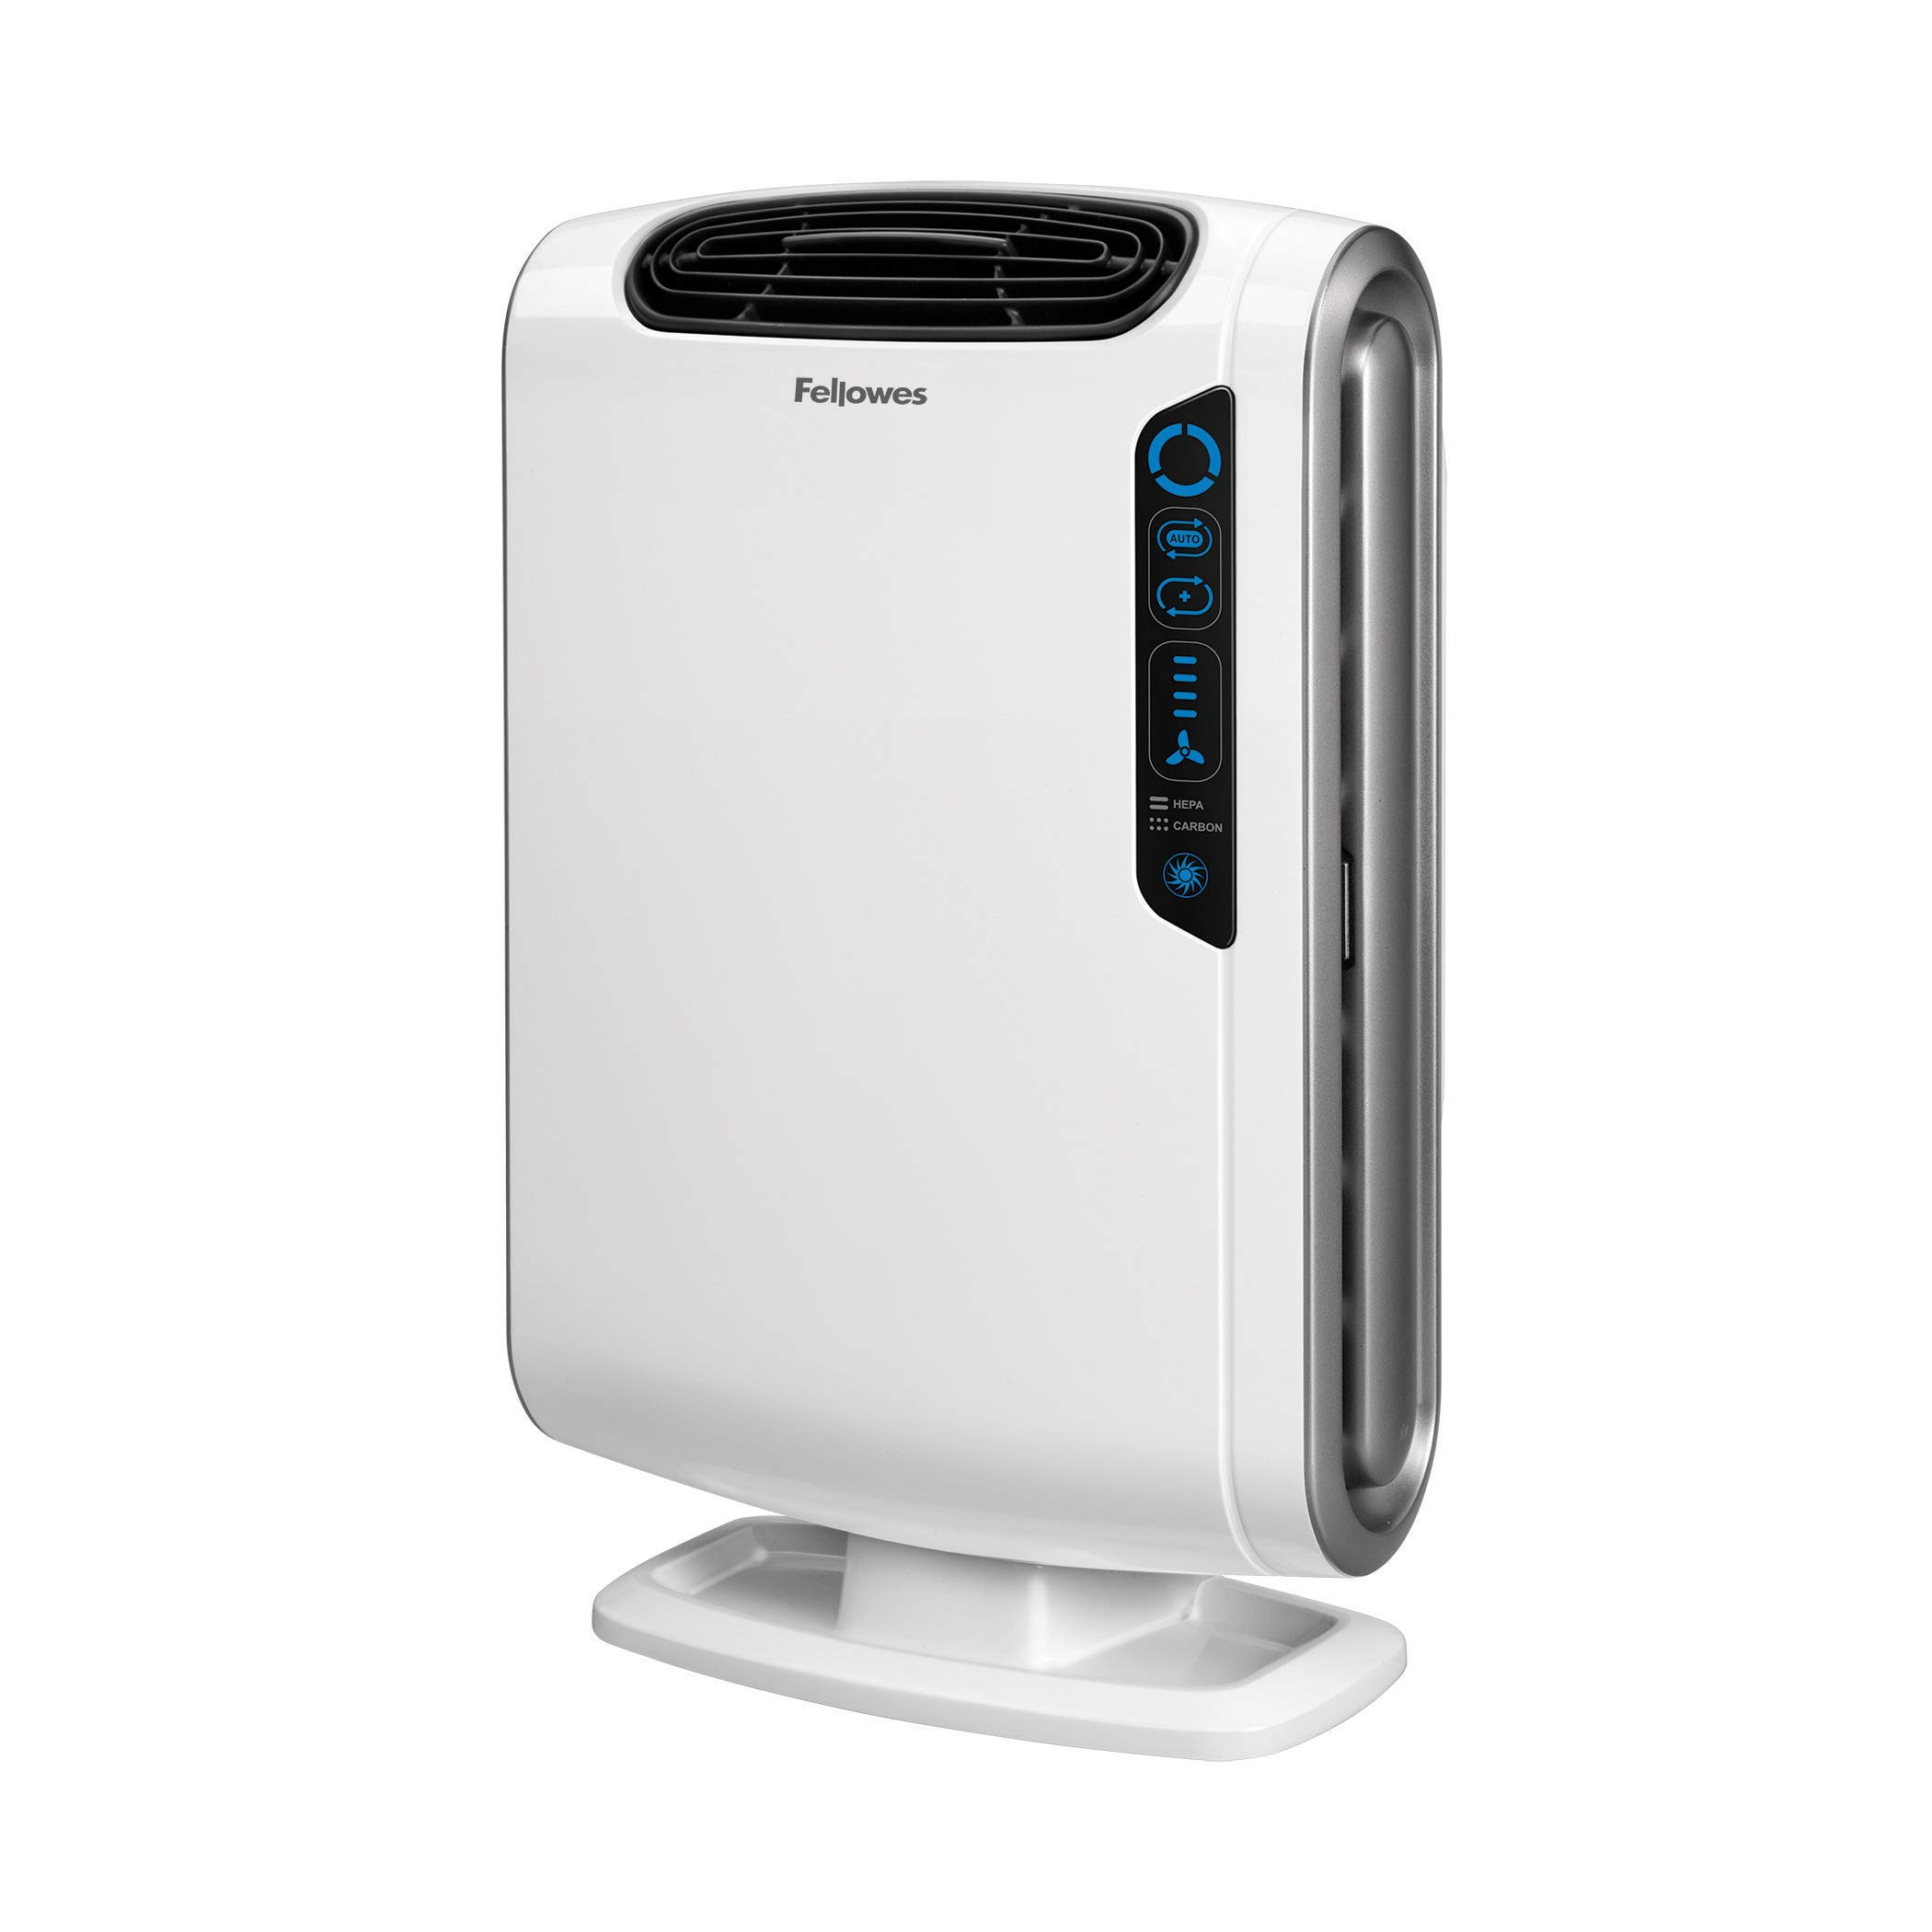 Fellowes Aeramax 200 - Purificador de aire: Amazon.es: Hogar